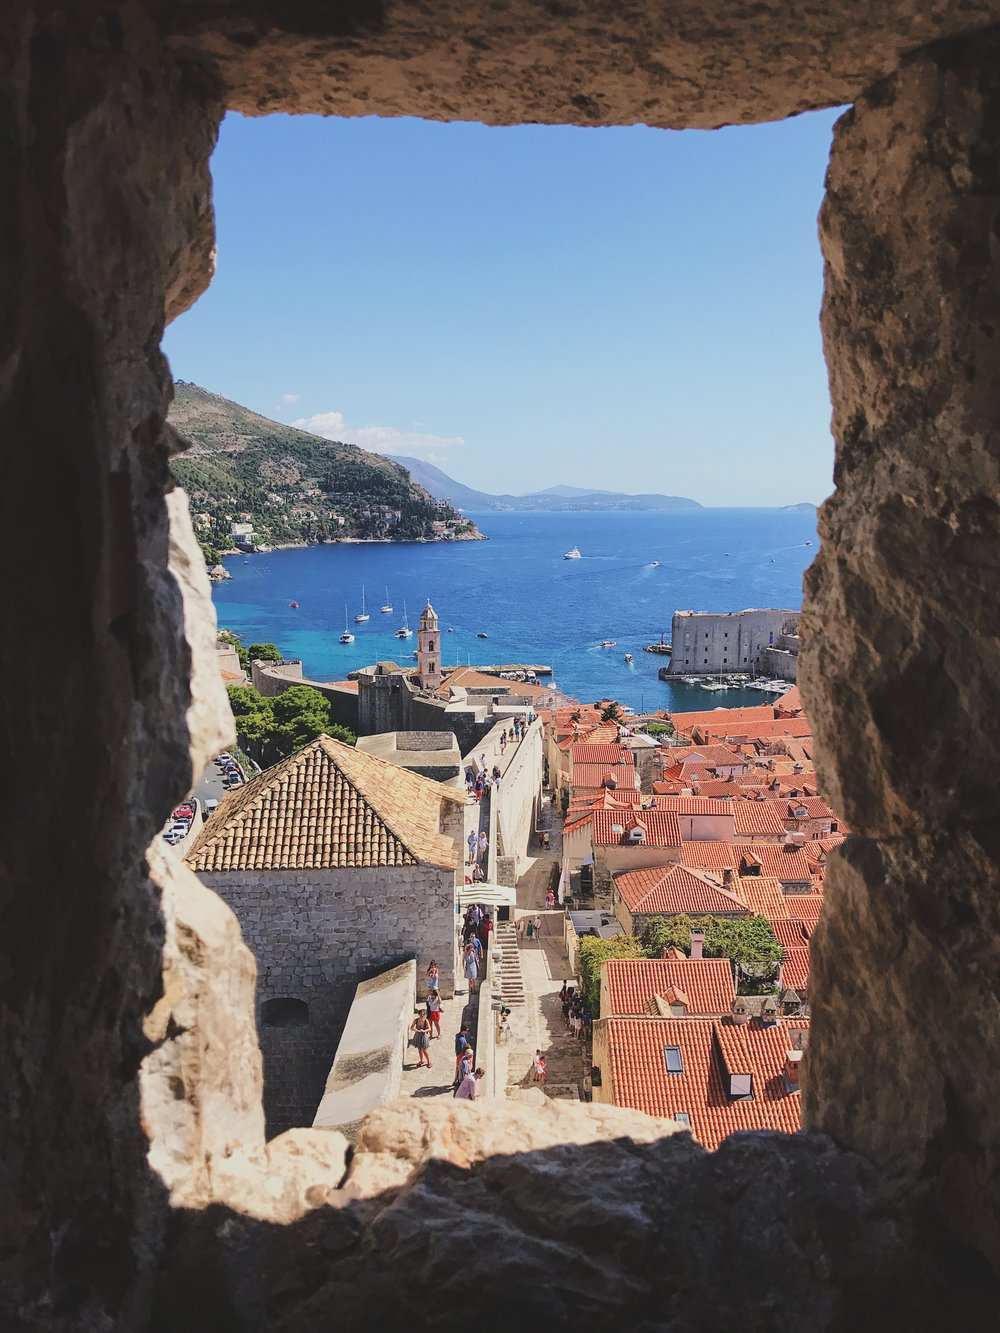 A view of old town and the Adriatic sea through a window in the wall